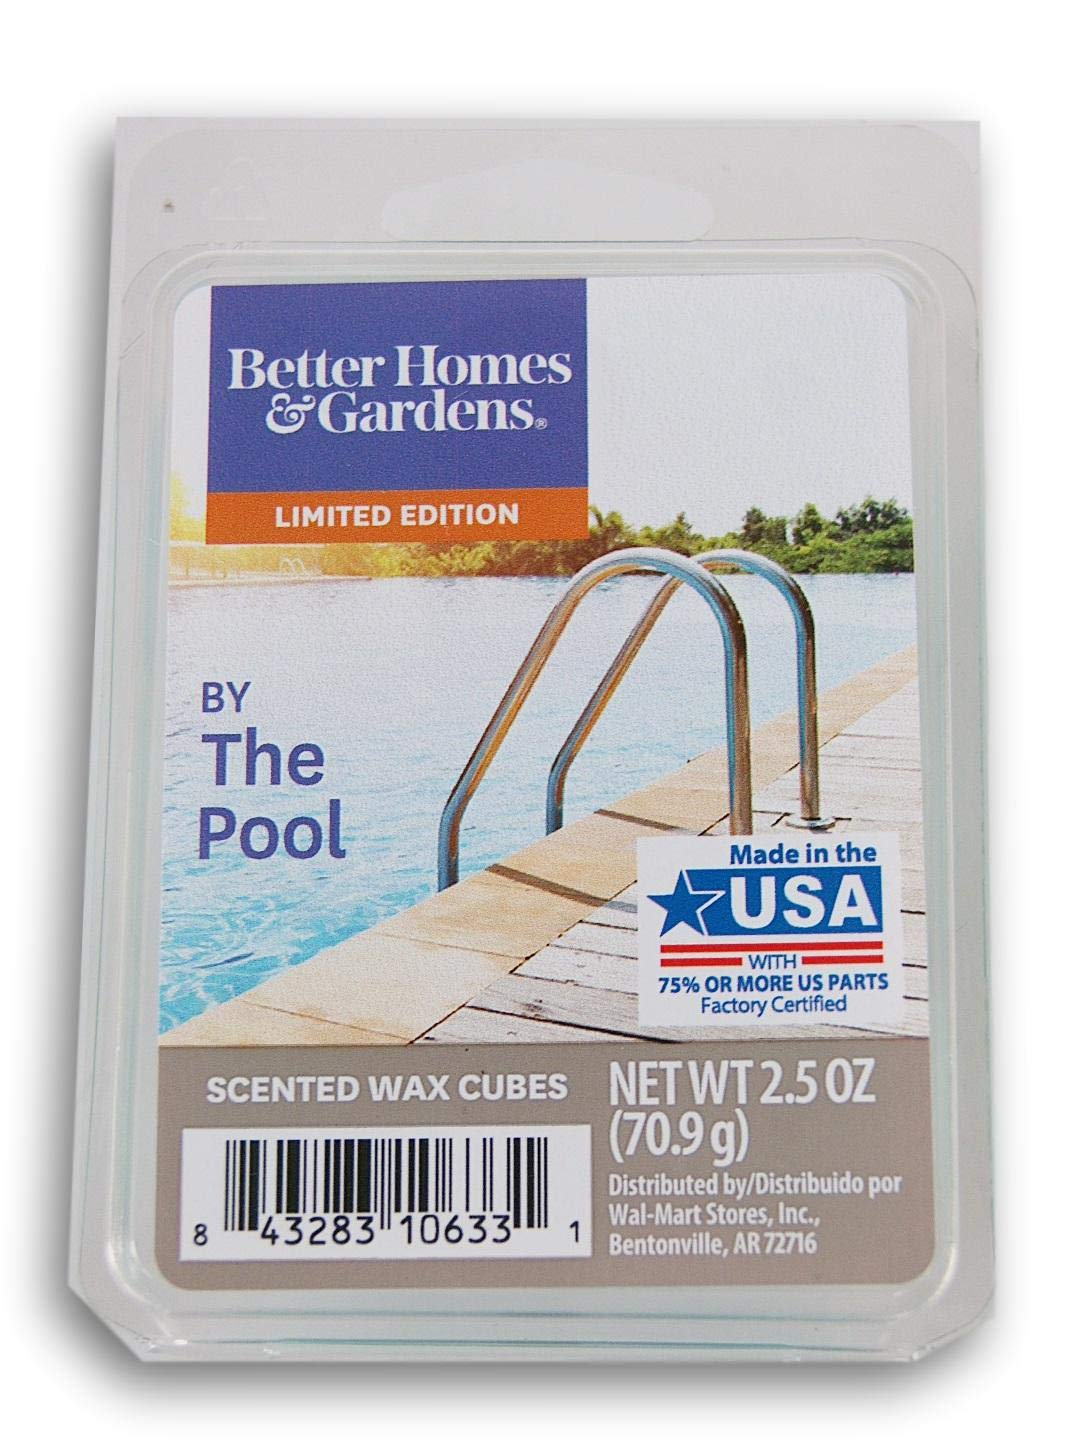 Better Homes & Gardens by The Pool 2019 Edition Wax Cubes